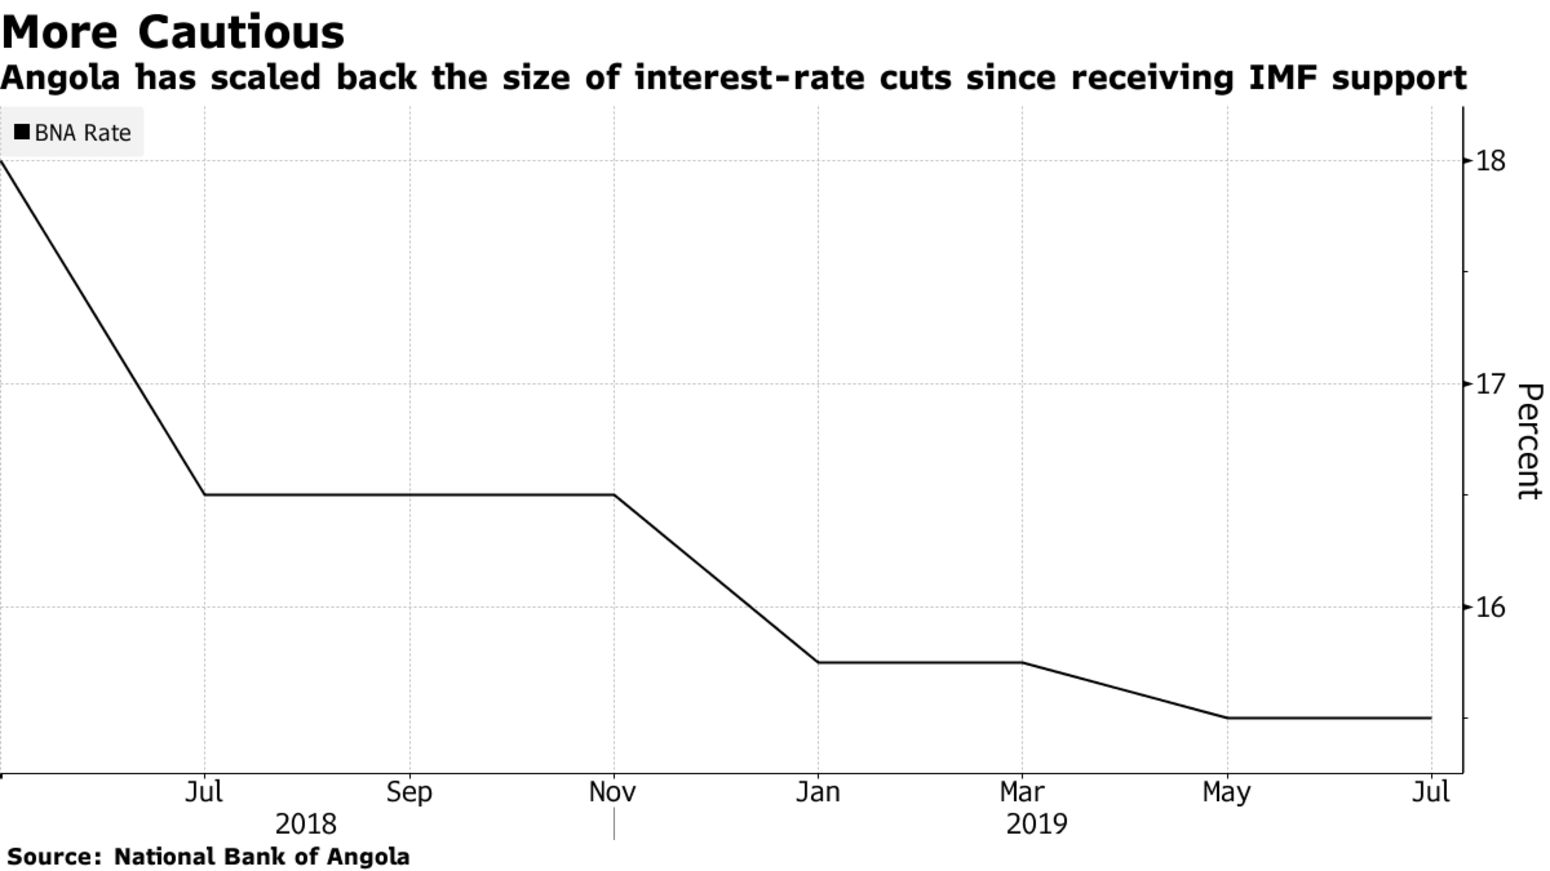 Angola has scaled back the size of interest-rate cuts since receiving IMF support